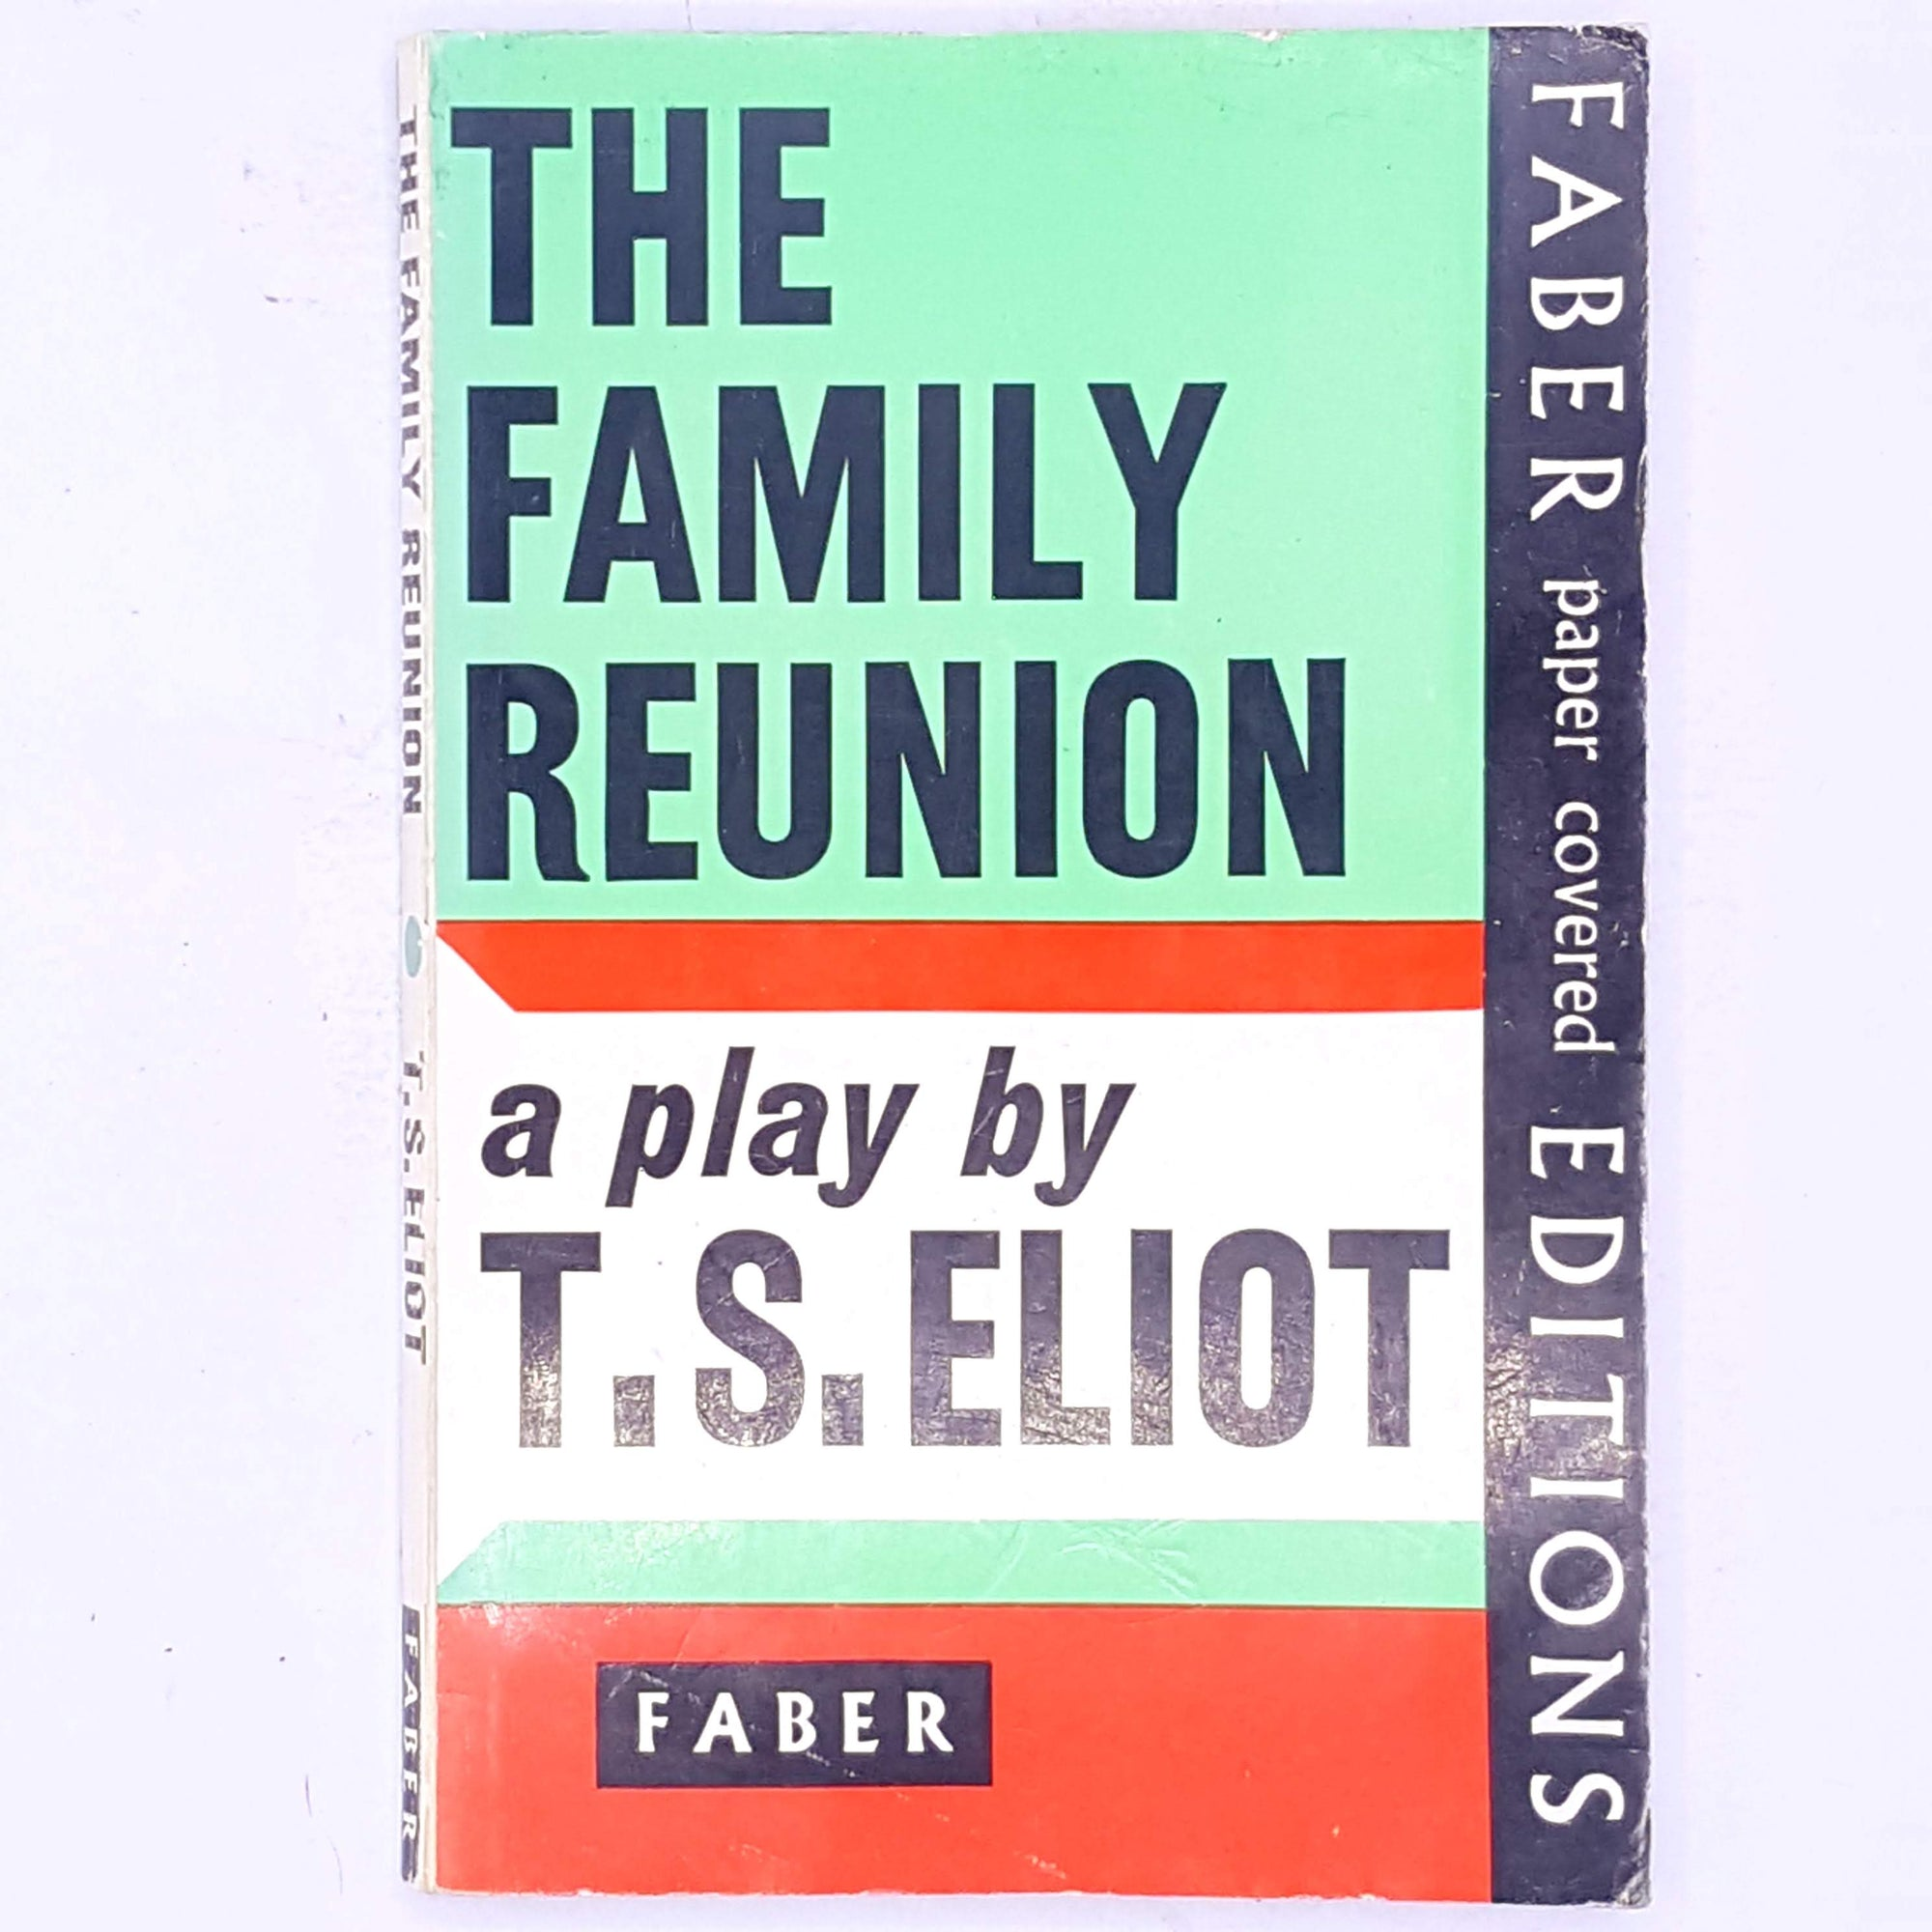 books-decorative-classic-vintage-thrift-country-house-library-antique-patterned-old-the-family-reunion-faber-and-faber-t.s.-eliot-plays-english-american-author-poet-play-wright-